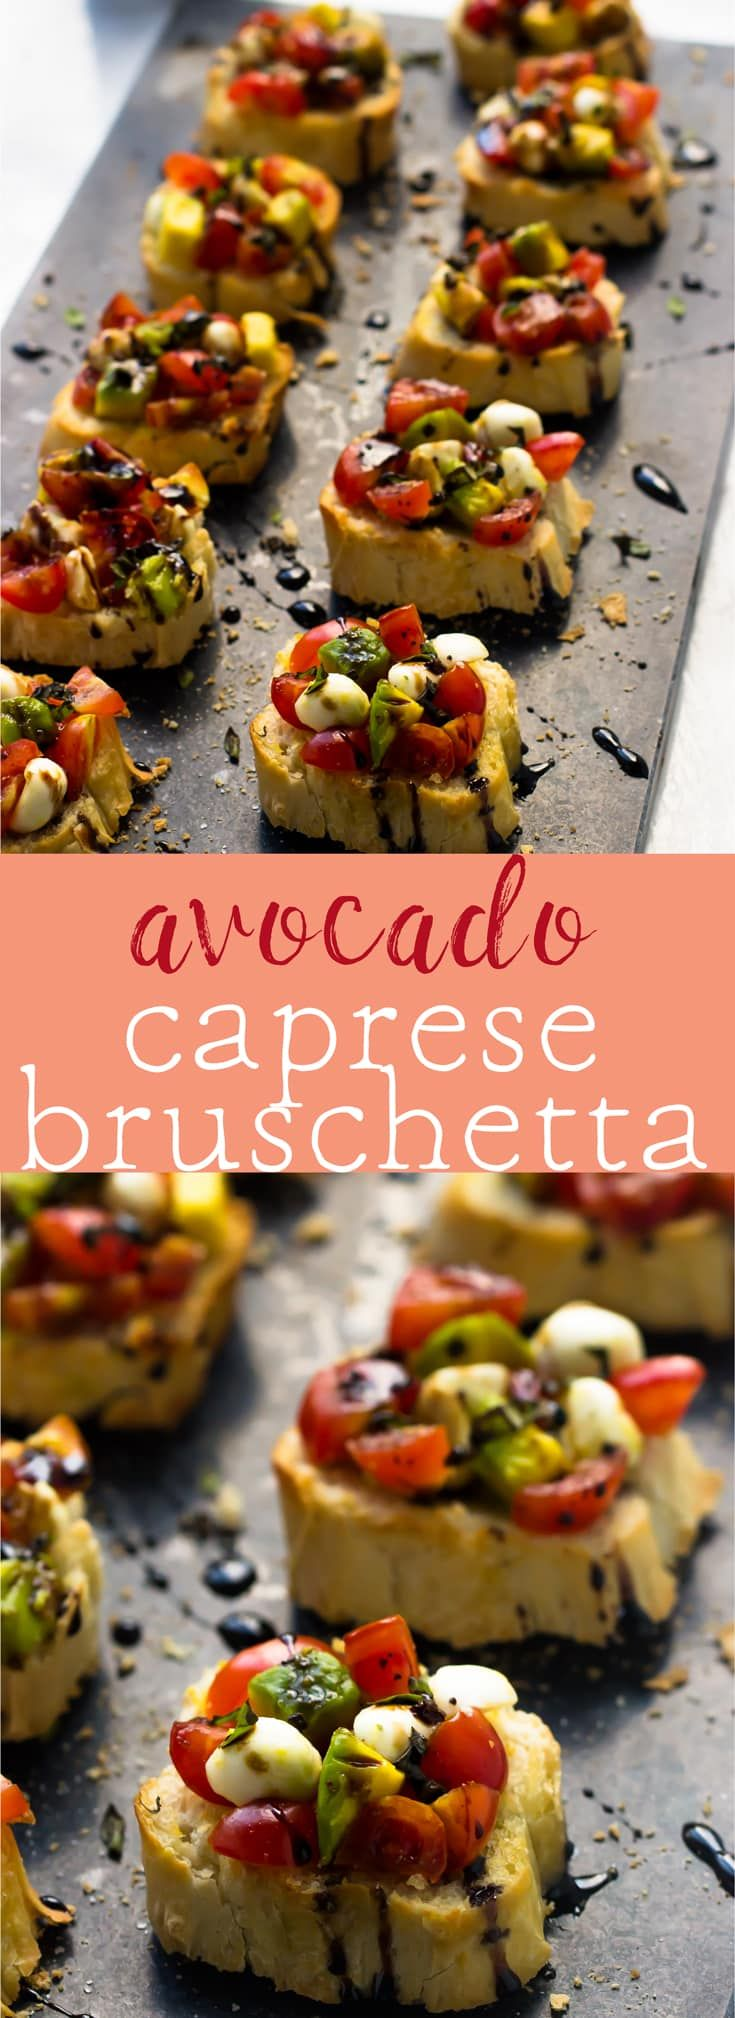 This 10 minute Avocado Caprese Bruschetta makes for the perfect quick appetiser that's always a crowd pleaser! via http://jessicainthekitchen.com